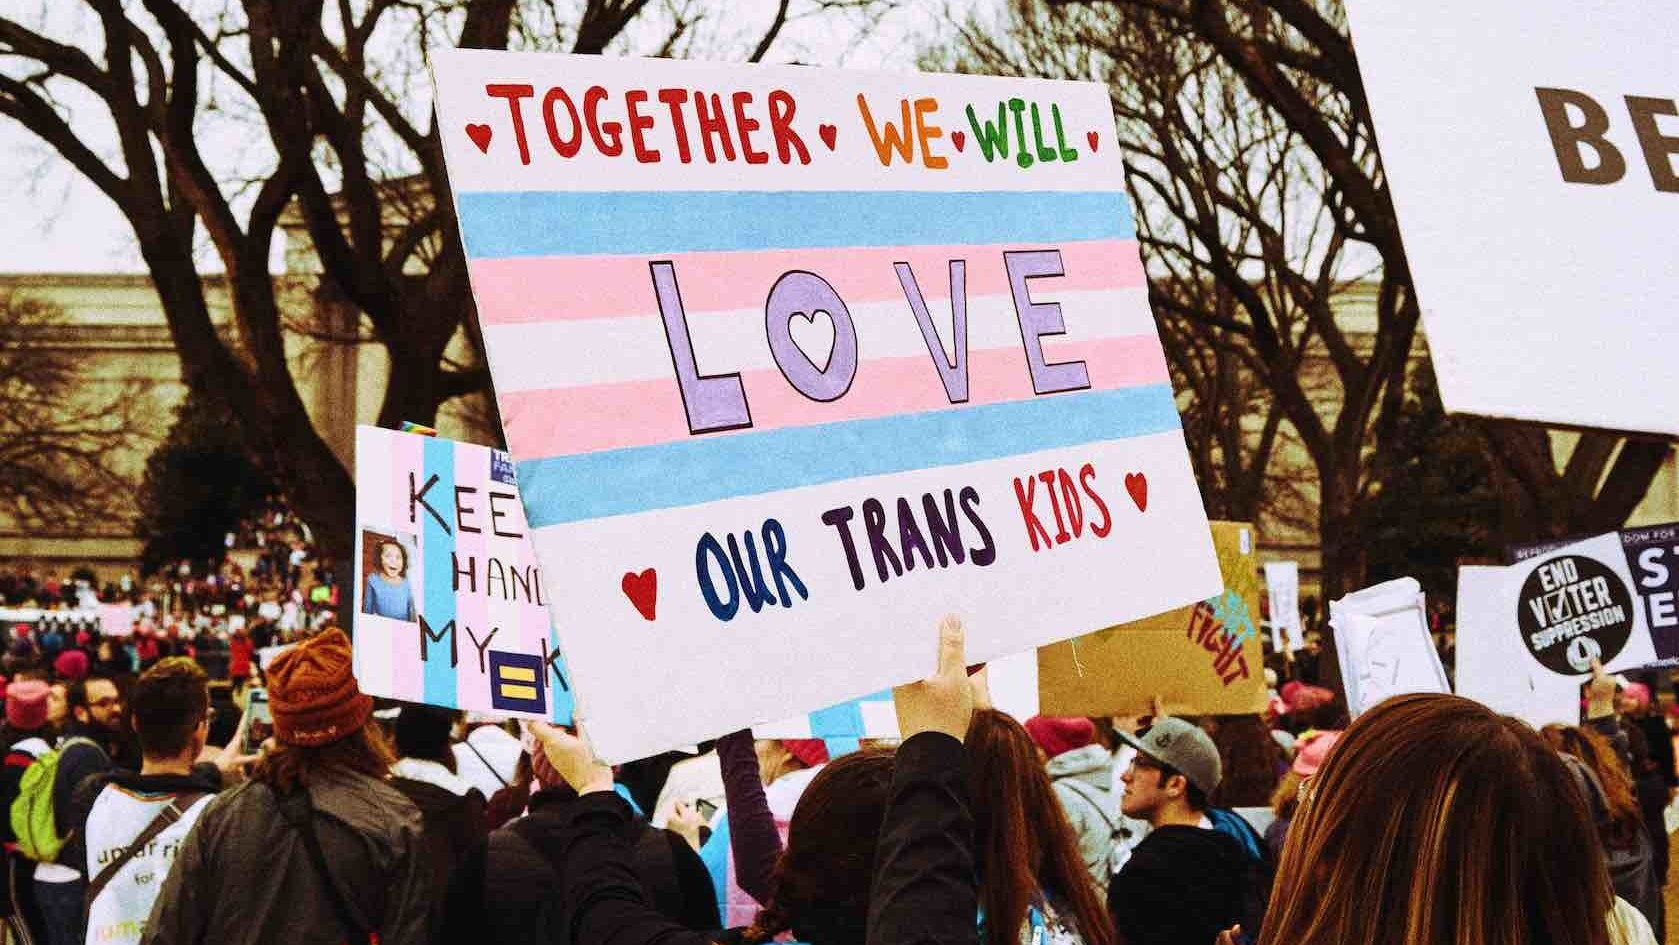 protect trans kids, and save us all